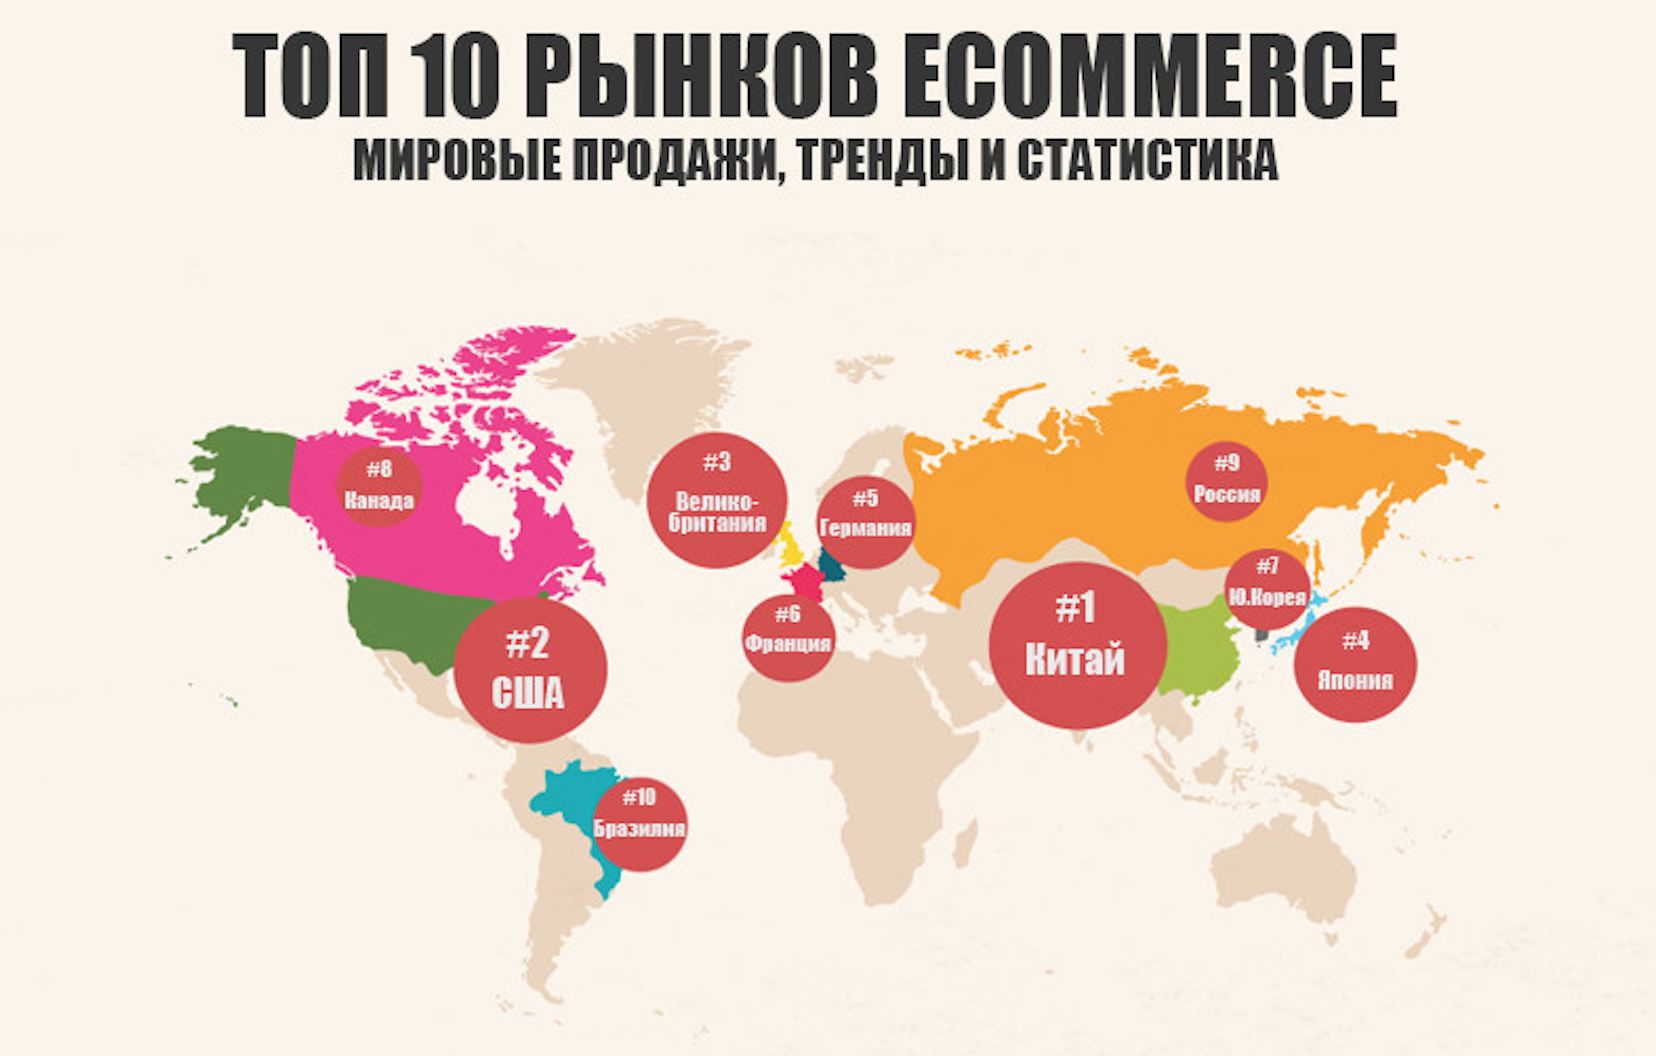 payonline_top10_ecommerce_markets_6